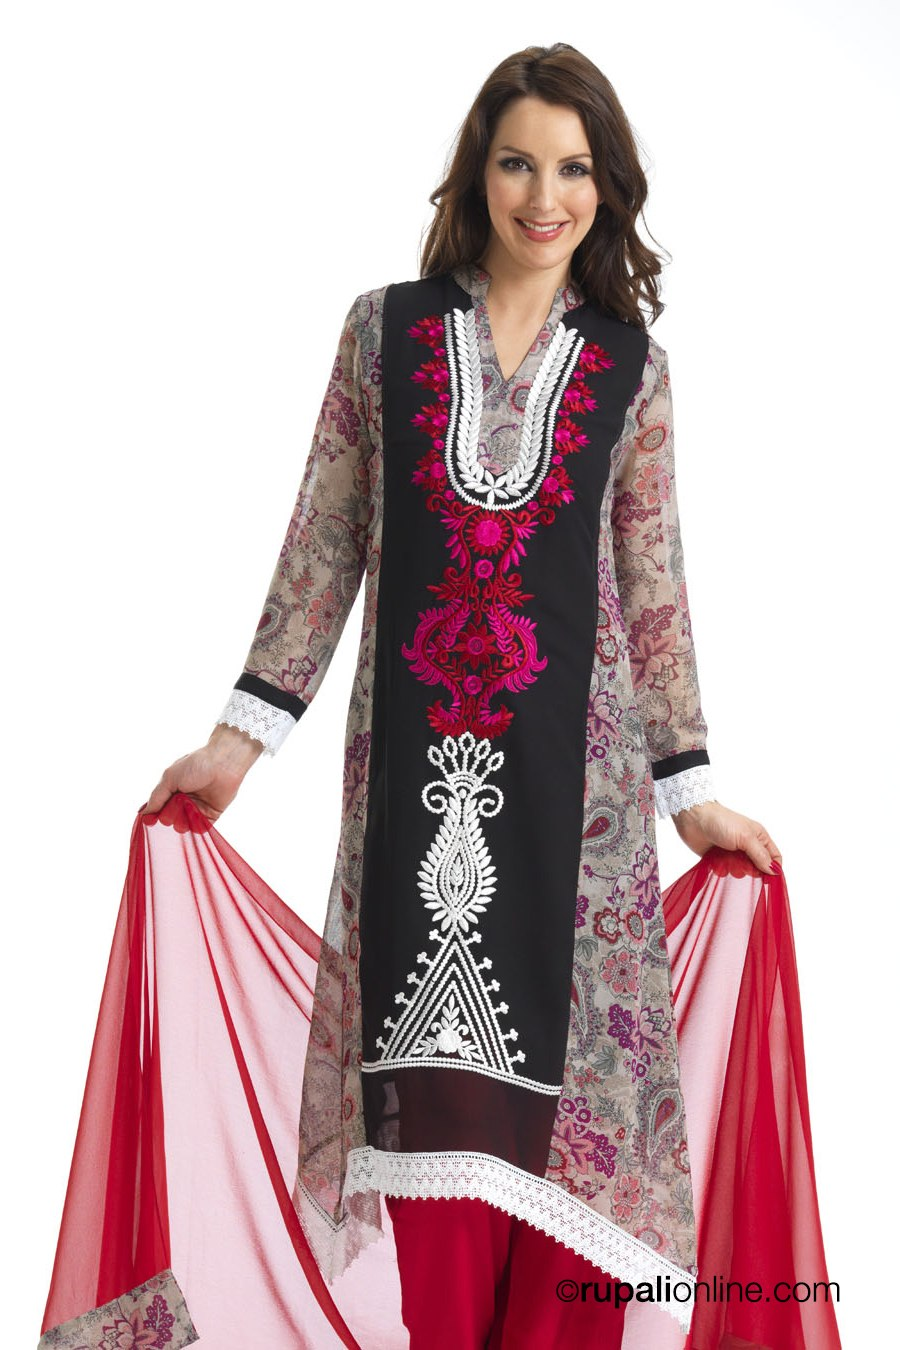 e0acbec4fe Asian Trouser Suits Collection 2013 | Casual Salwar Kameez Collection -  falk hairstyles she9